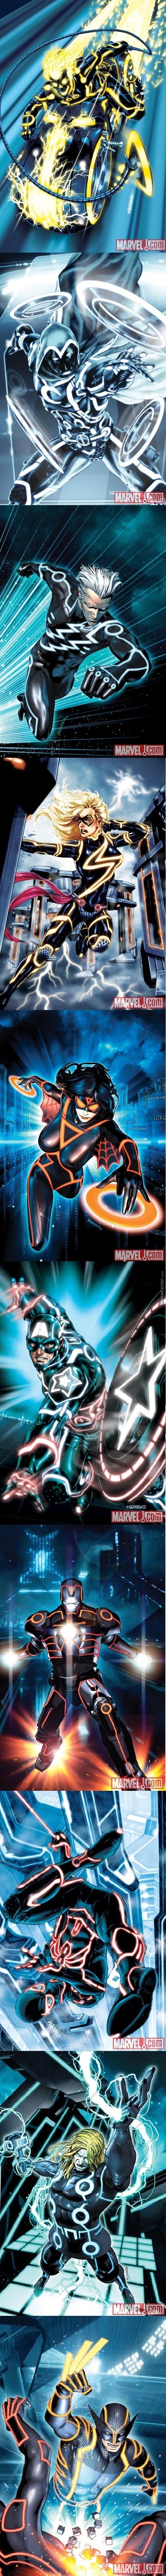 Marvel Heroes Drawn In Tron Style